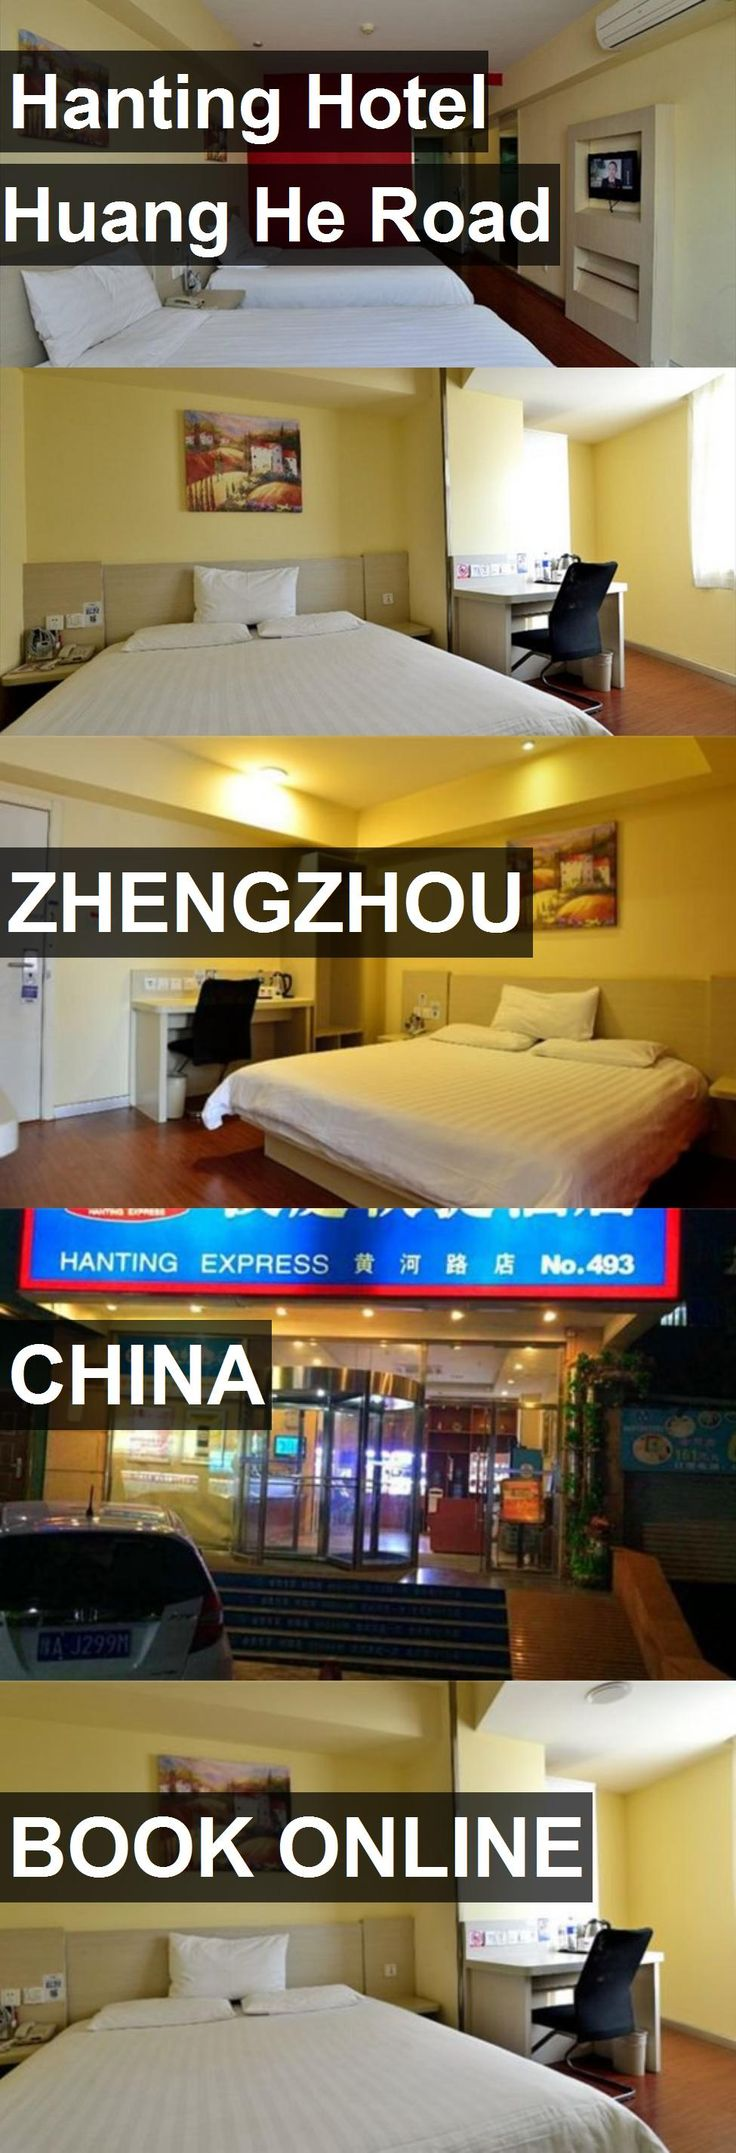 Hanting Hotel Huang He Road in Zhengzhou, China. For more information, photos, reviews and best prices please follow the link. #China #Zhengzhou #travel #vacation #hotel